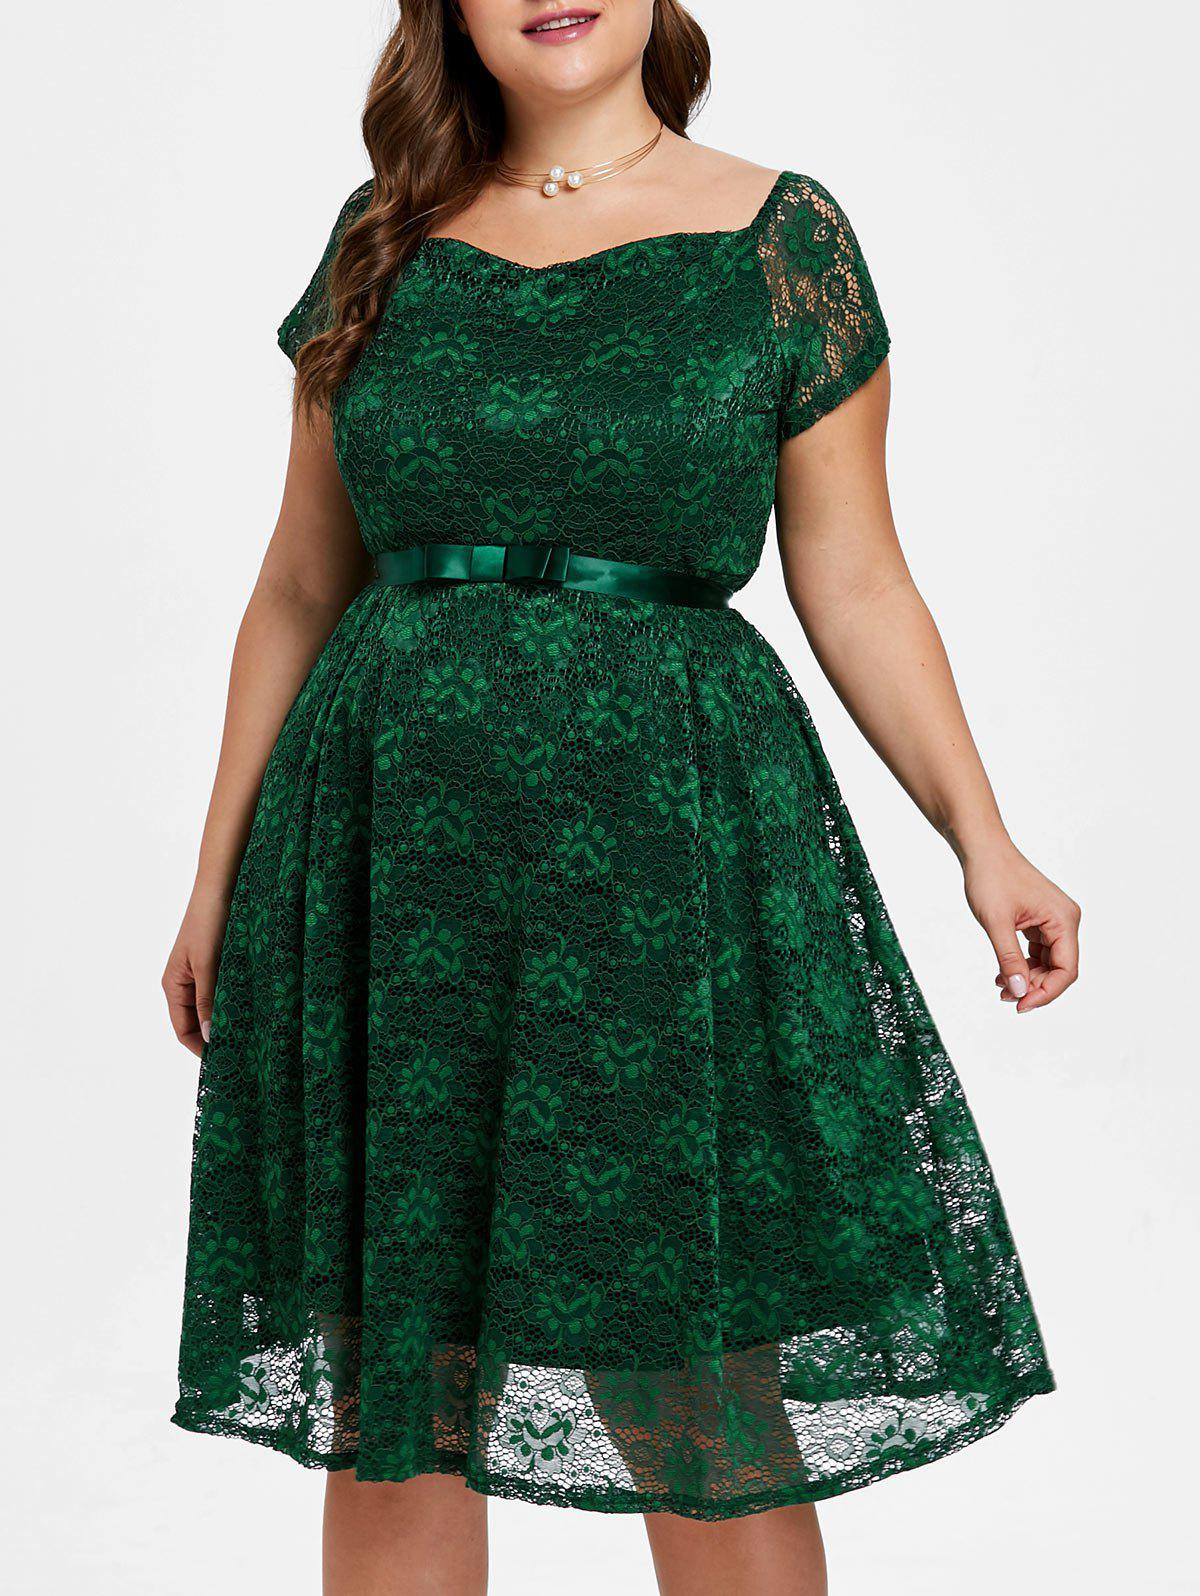 New Sweetheart Neck Plus Size Lace A Line Dress